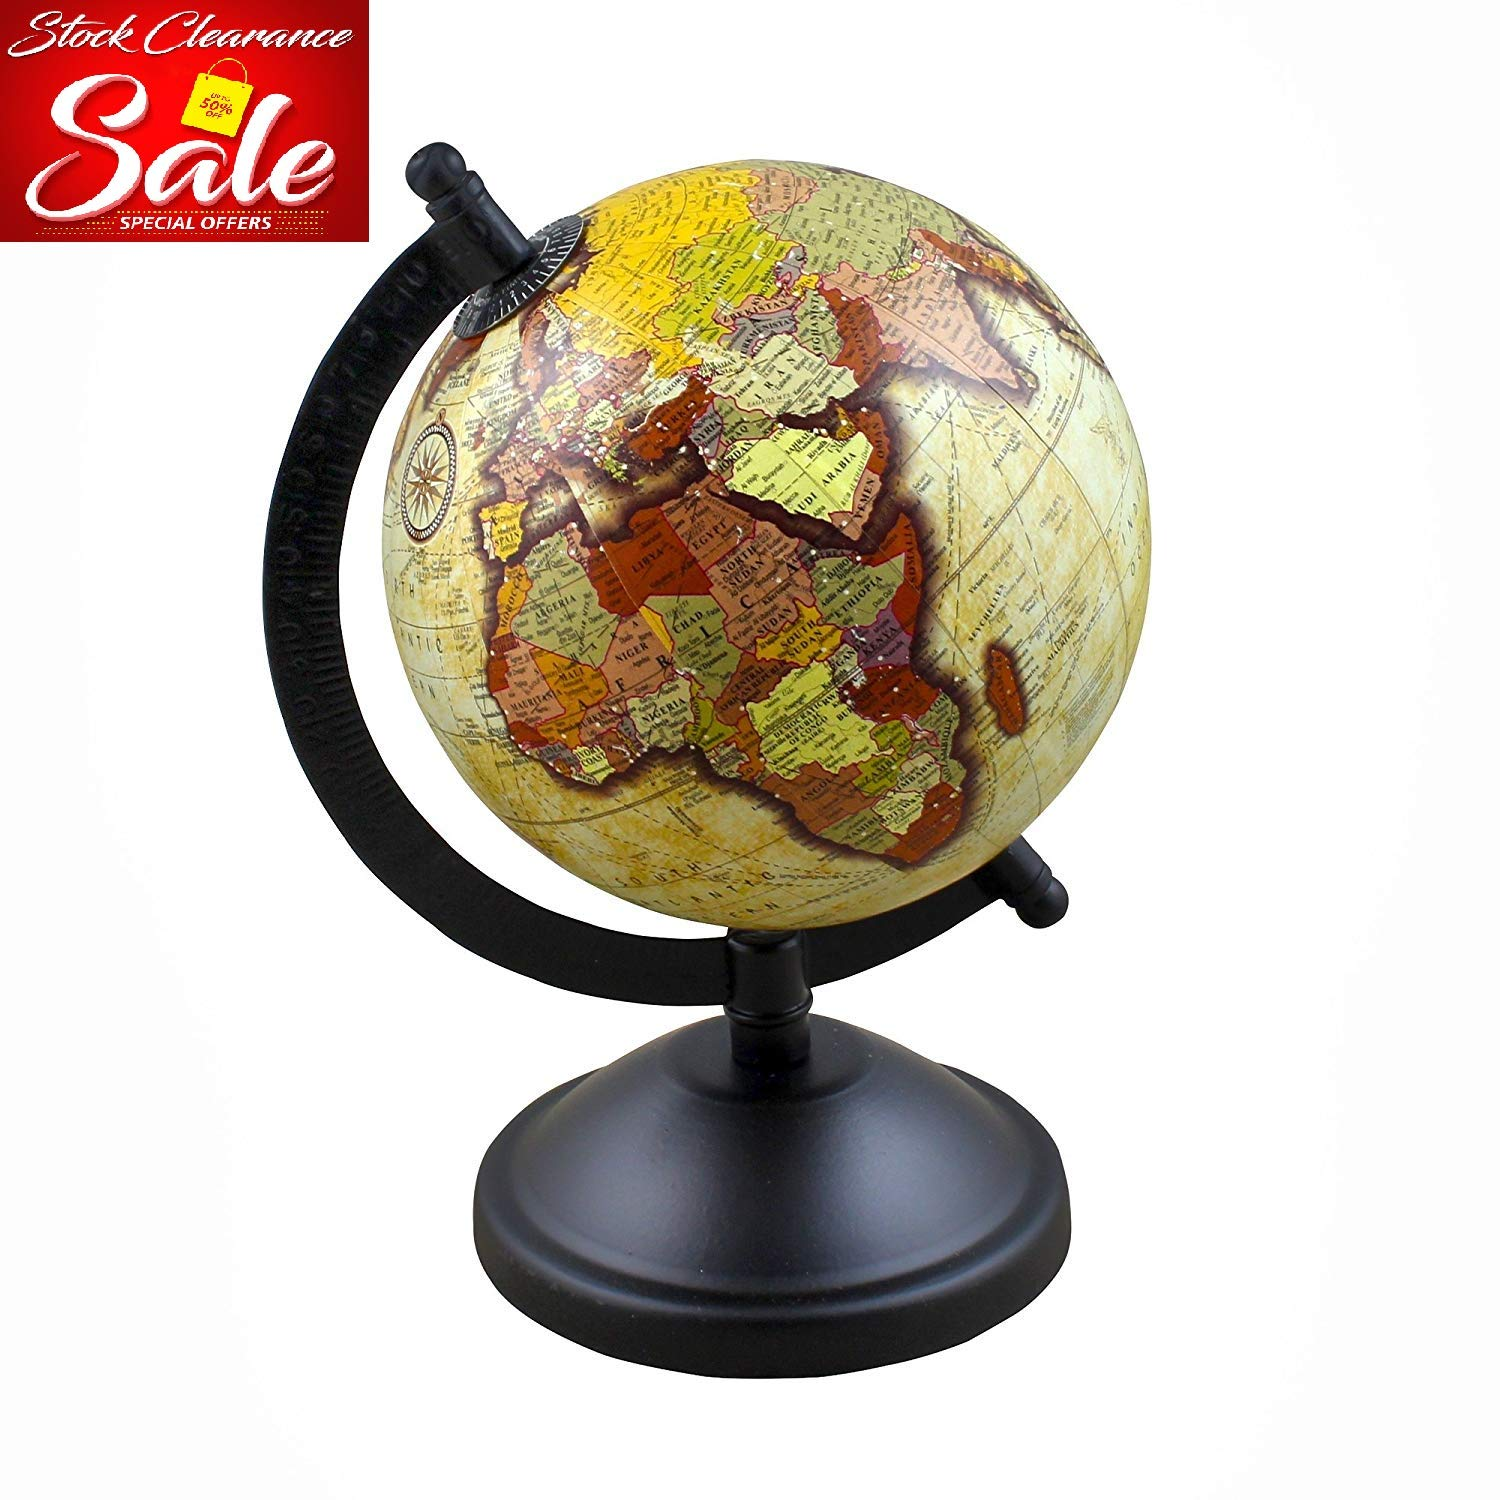 Decorative Desktop World Globe Earth Geography Map with Stand, 8 Inches for Office, Classroom, Kids Room & Home Décor - Stock Clearance Sale!!